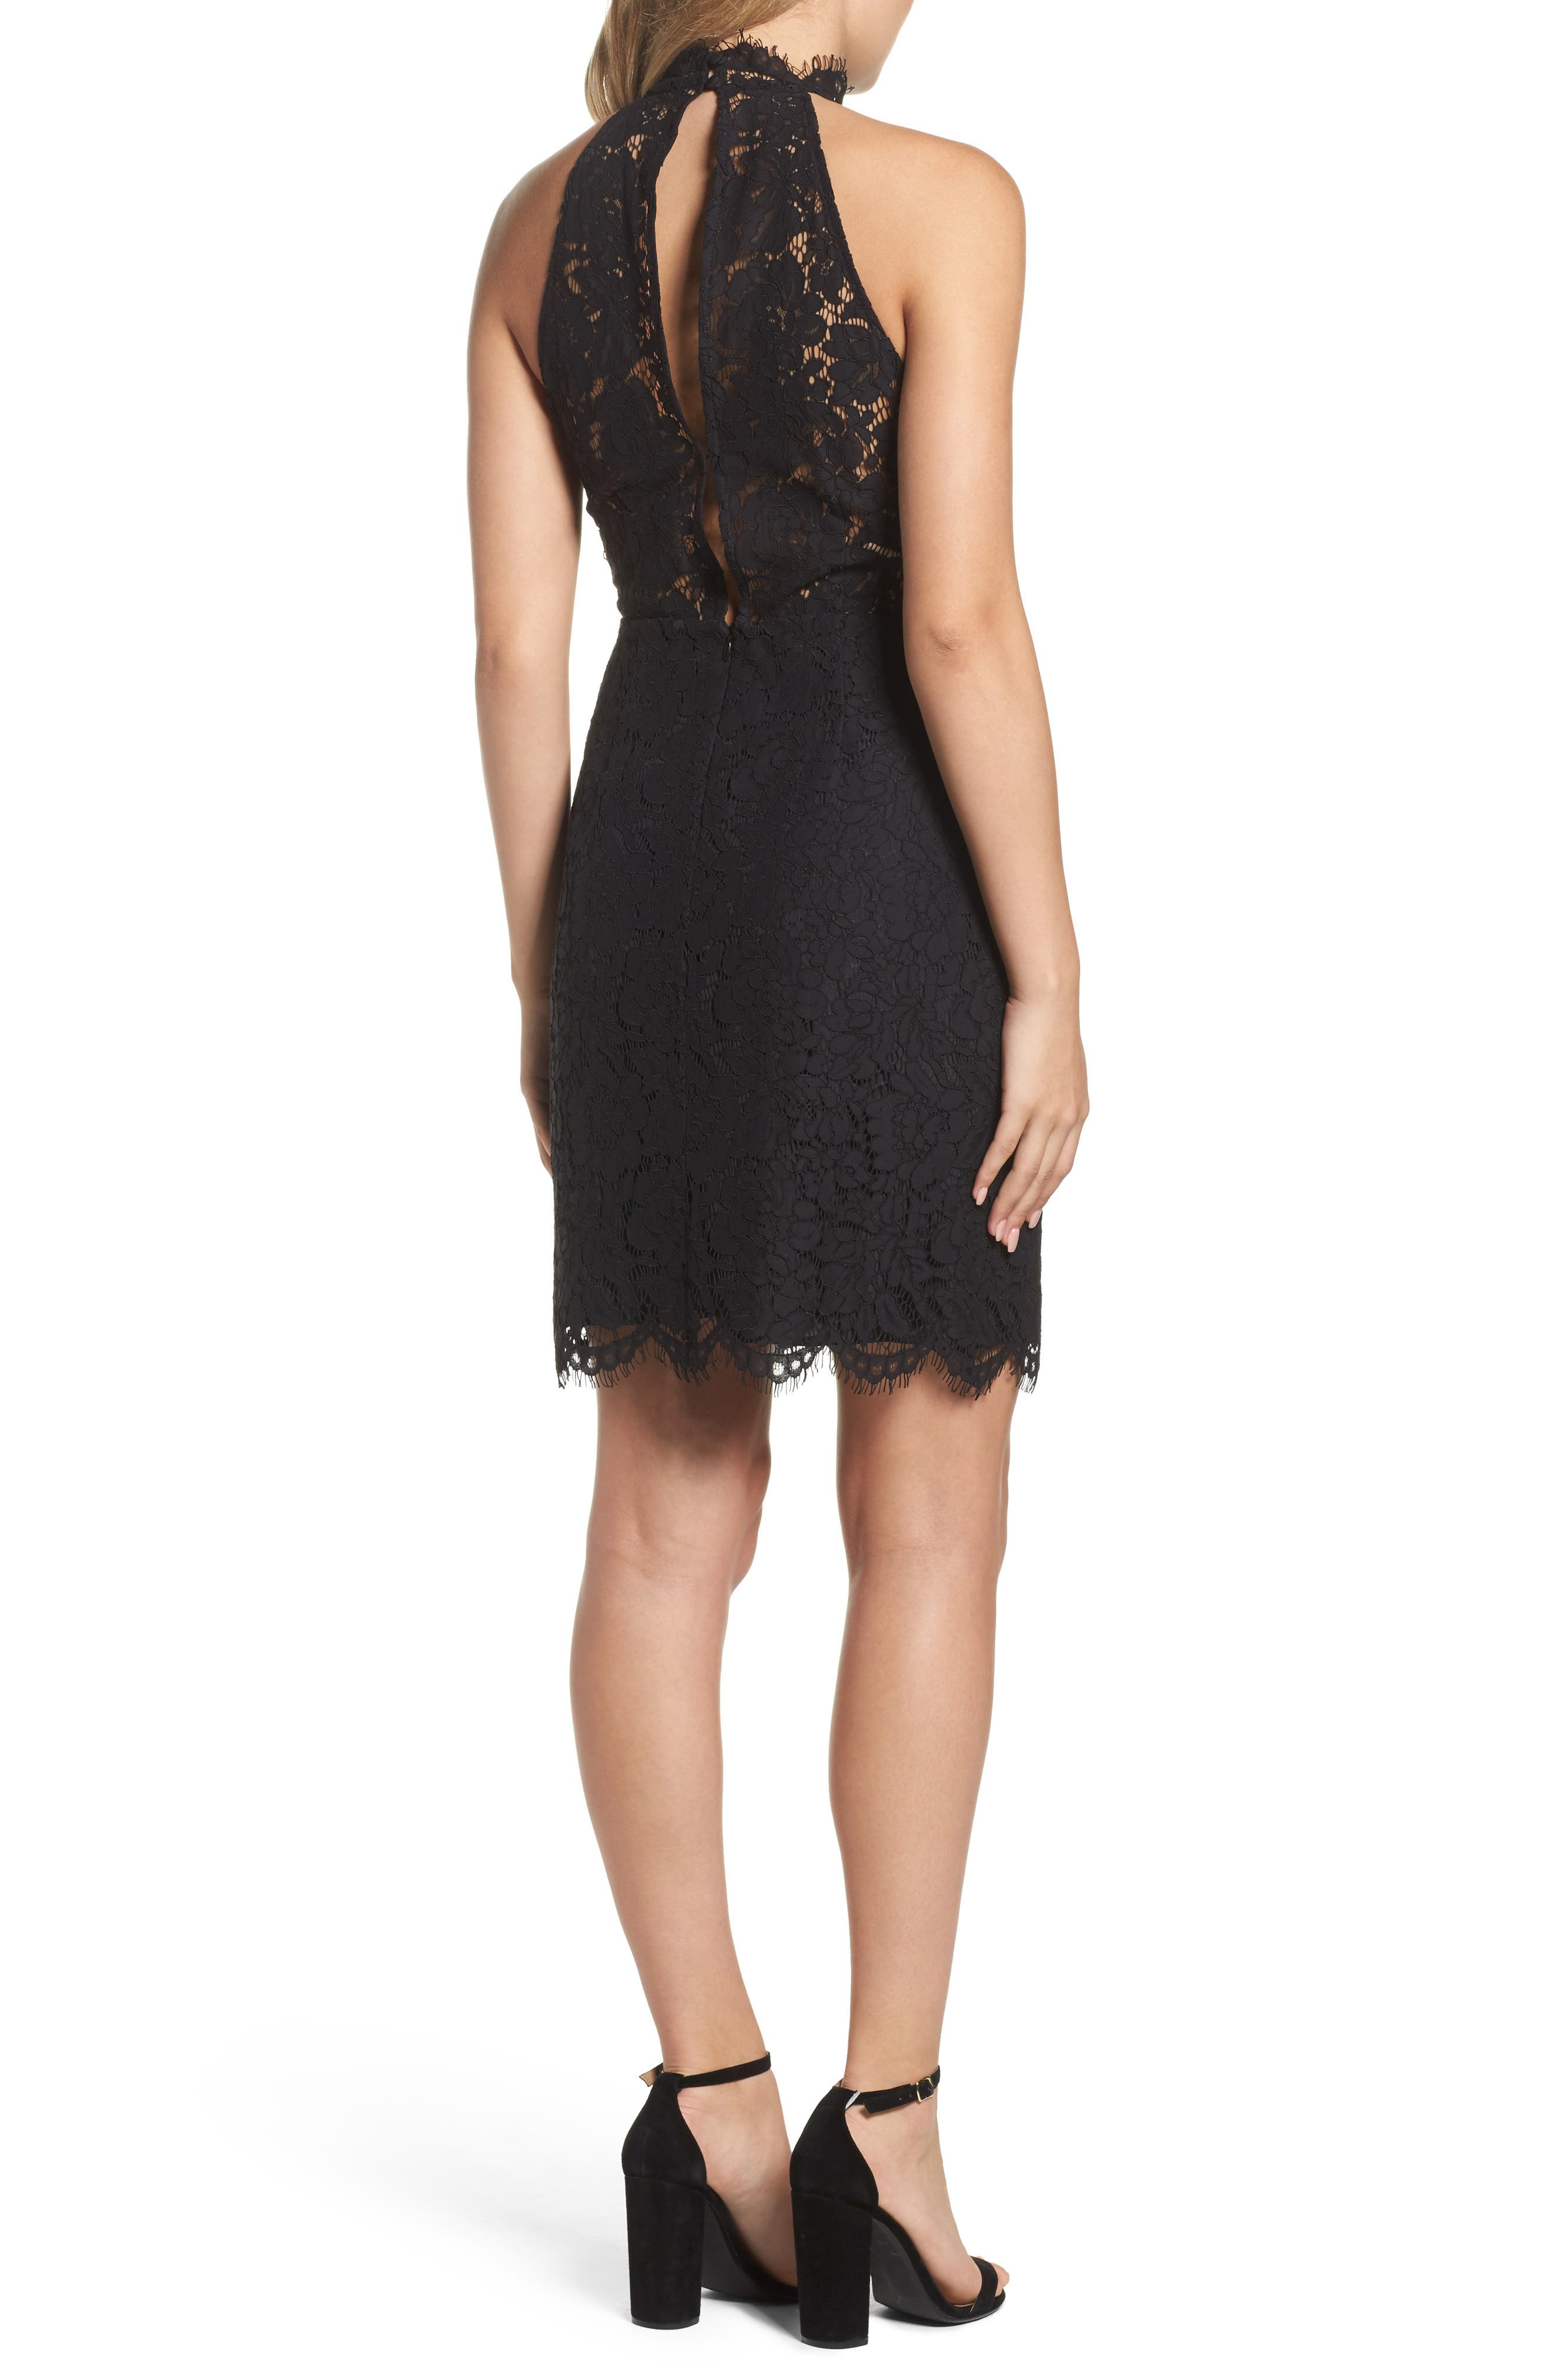 BB DAKOTA, Cara High Neck Lace Cocktail Dress, Alternate thumbnail 2, color, 001